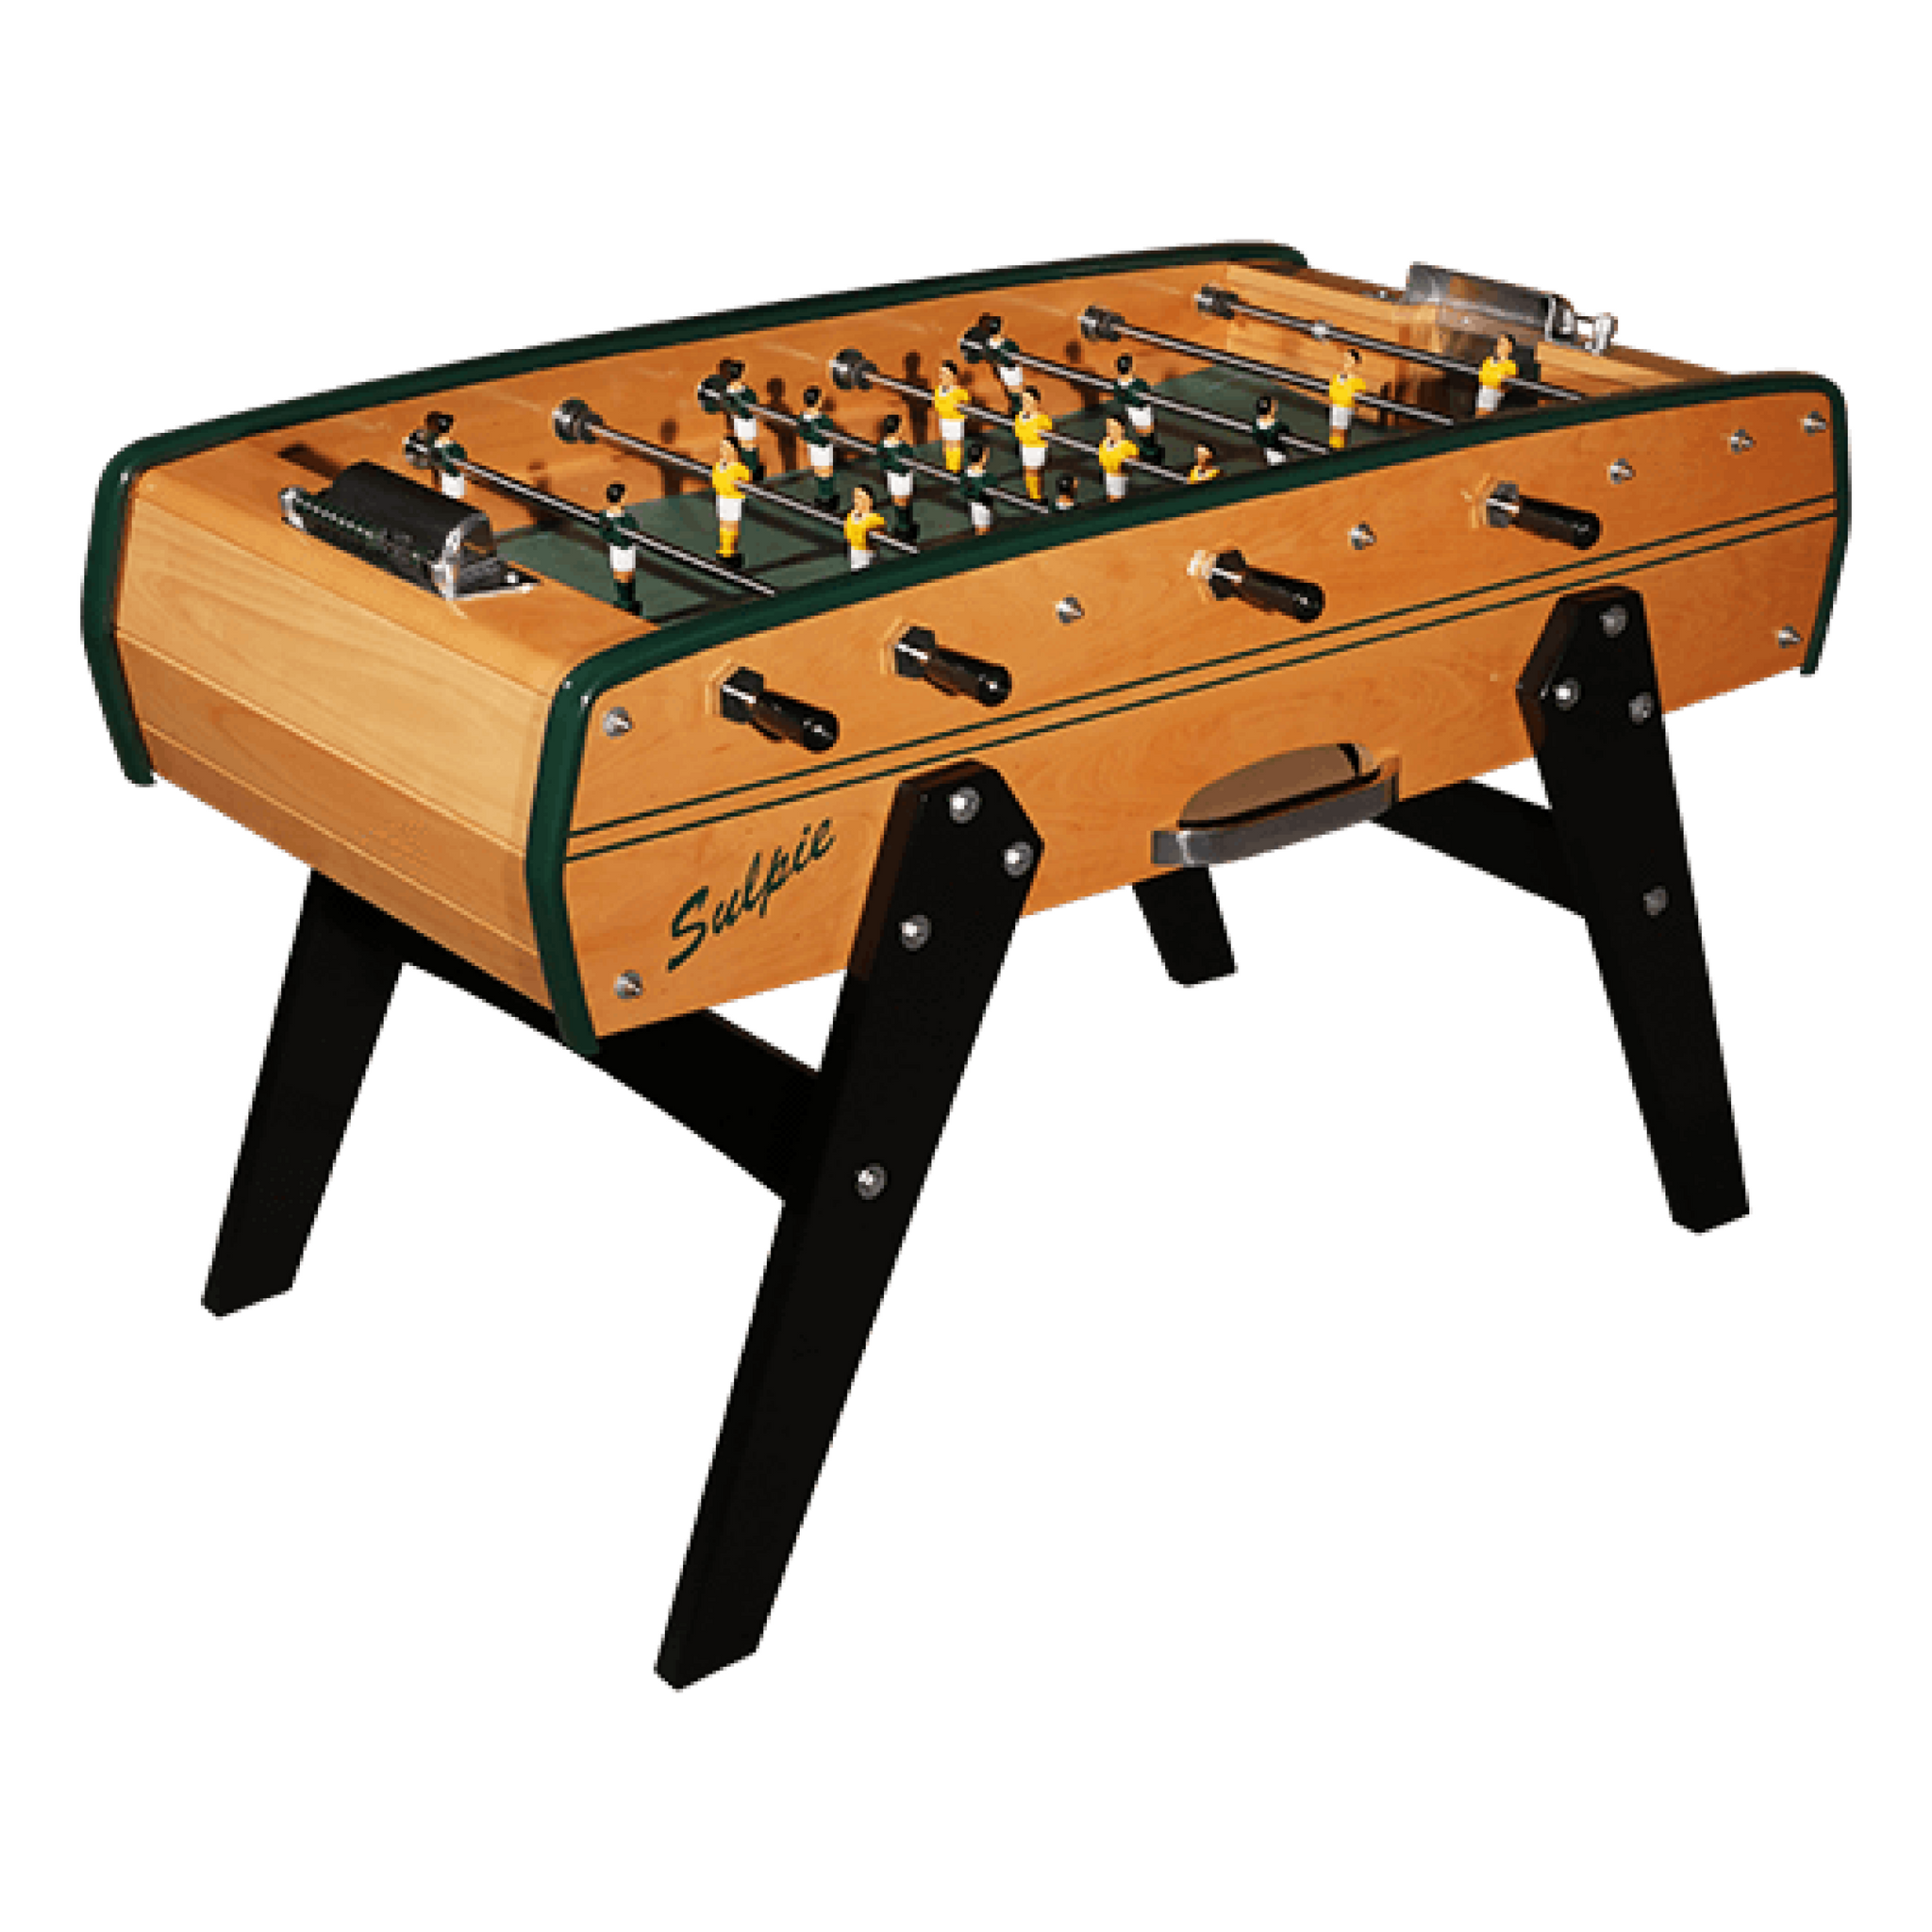 Sulpie Evolution Foosball Table with Green Trim